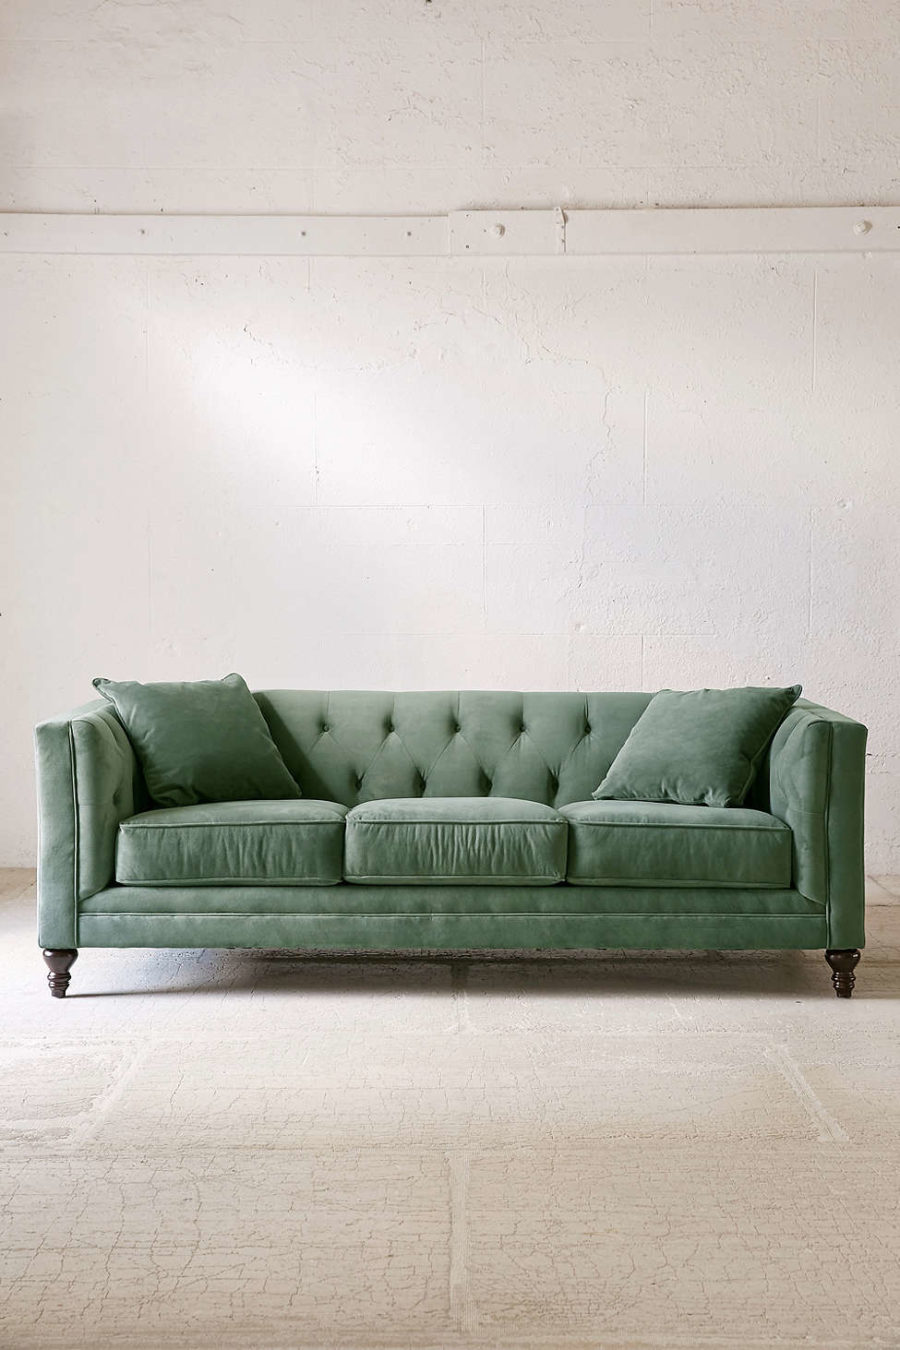 20 Velvet Couches That Add Sophistication And Eclectiscism